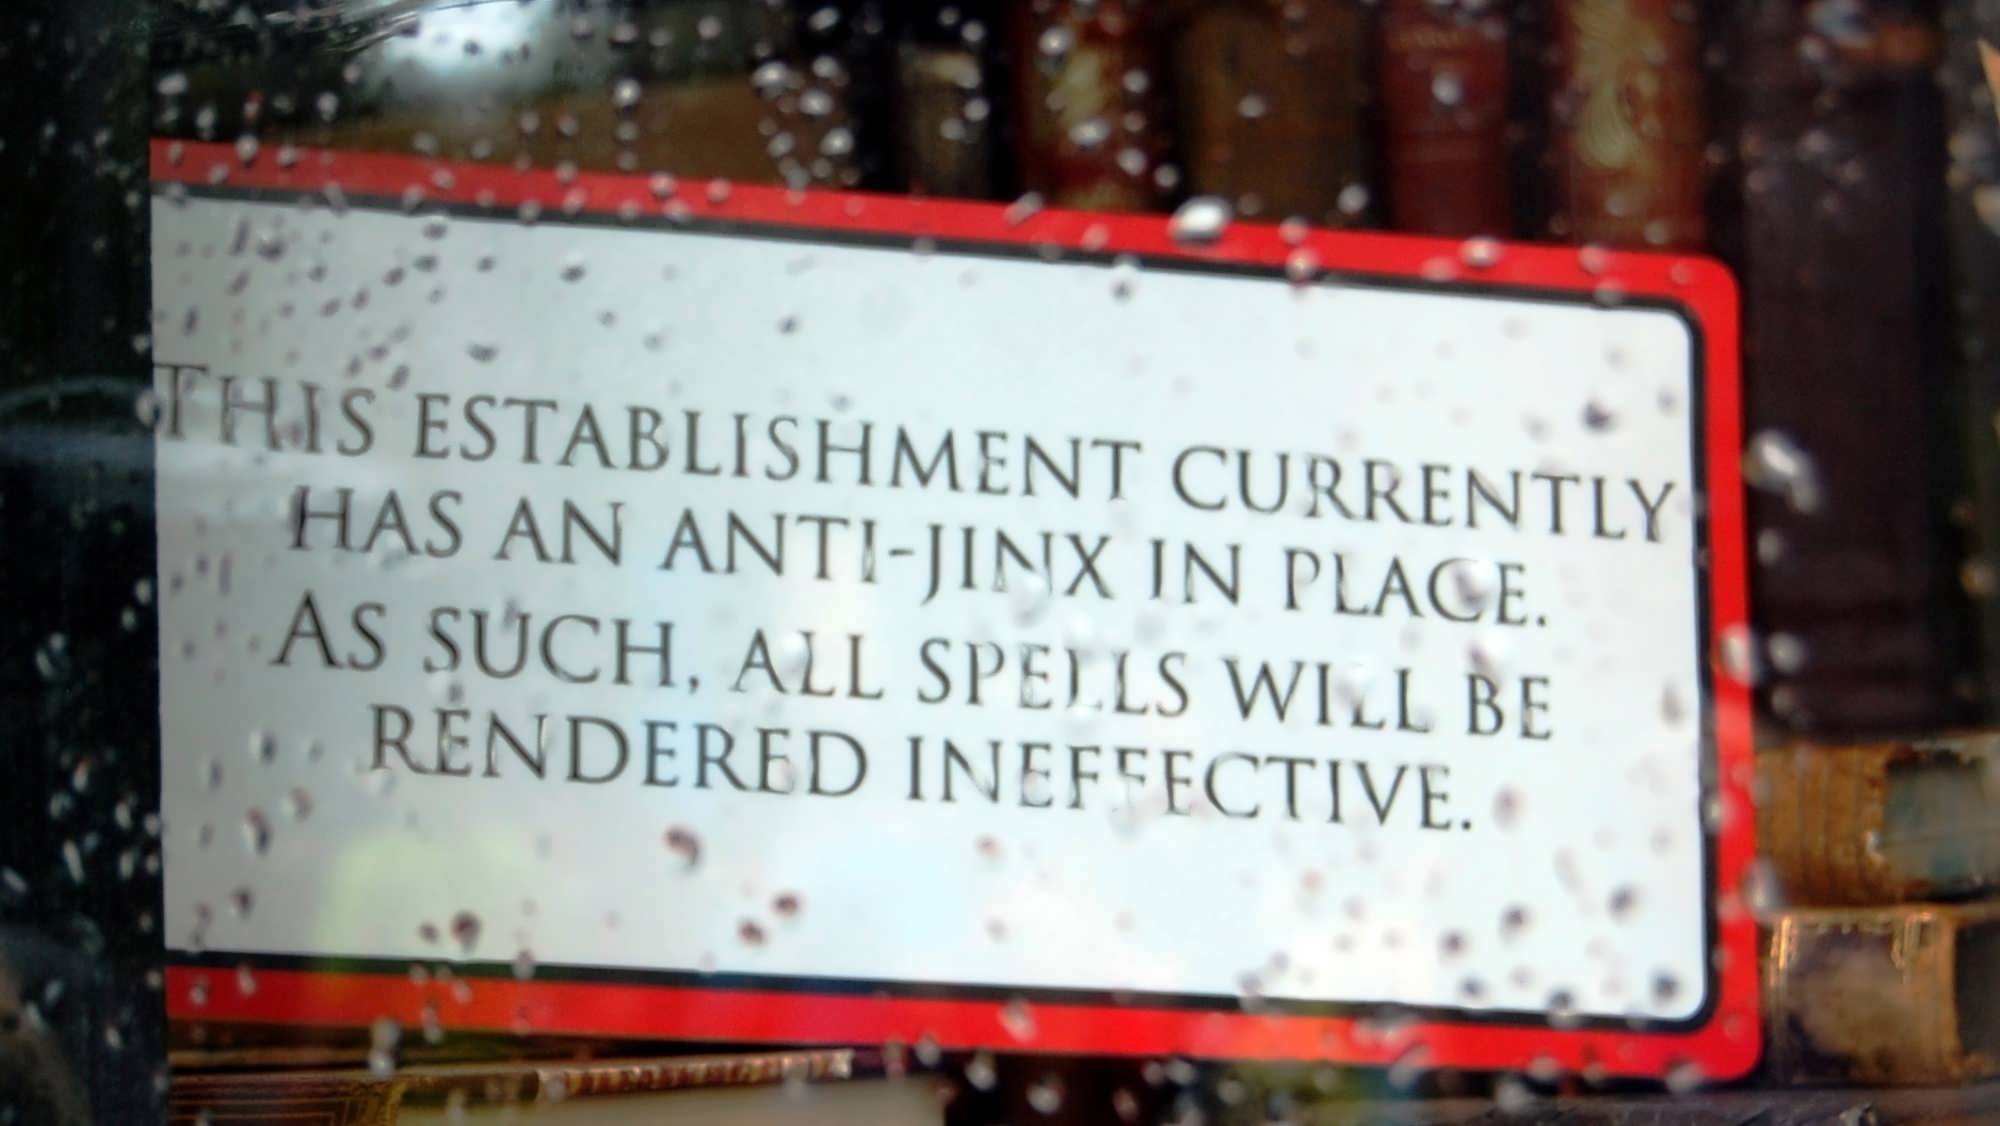 An anti-jinx sign.